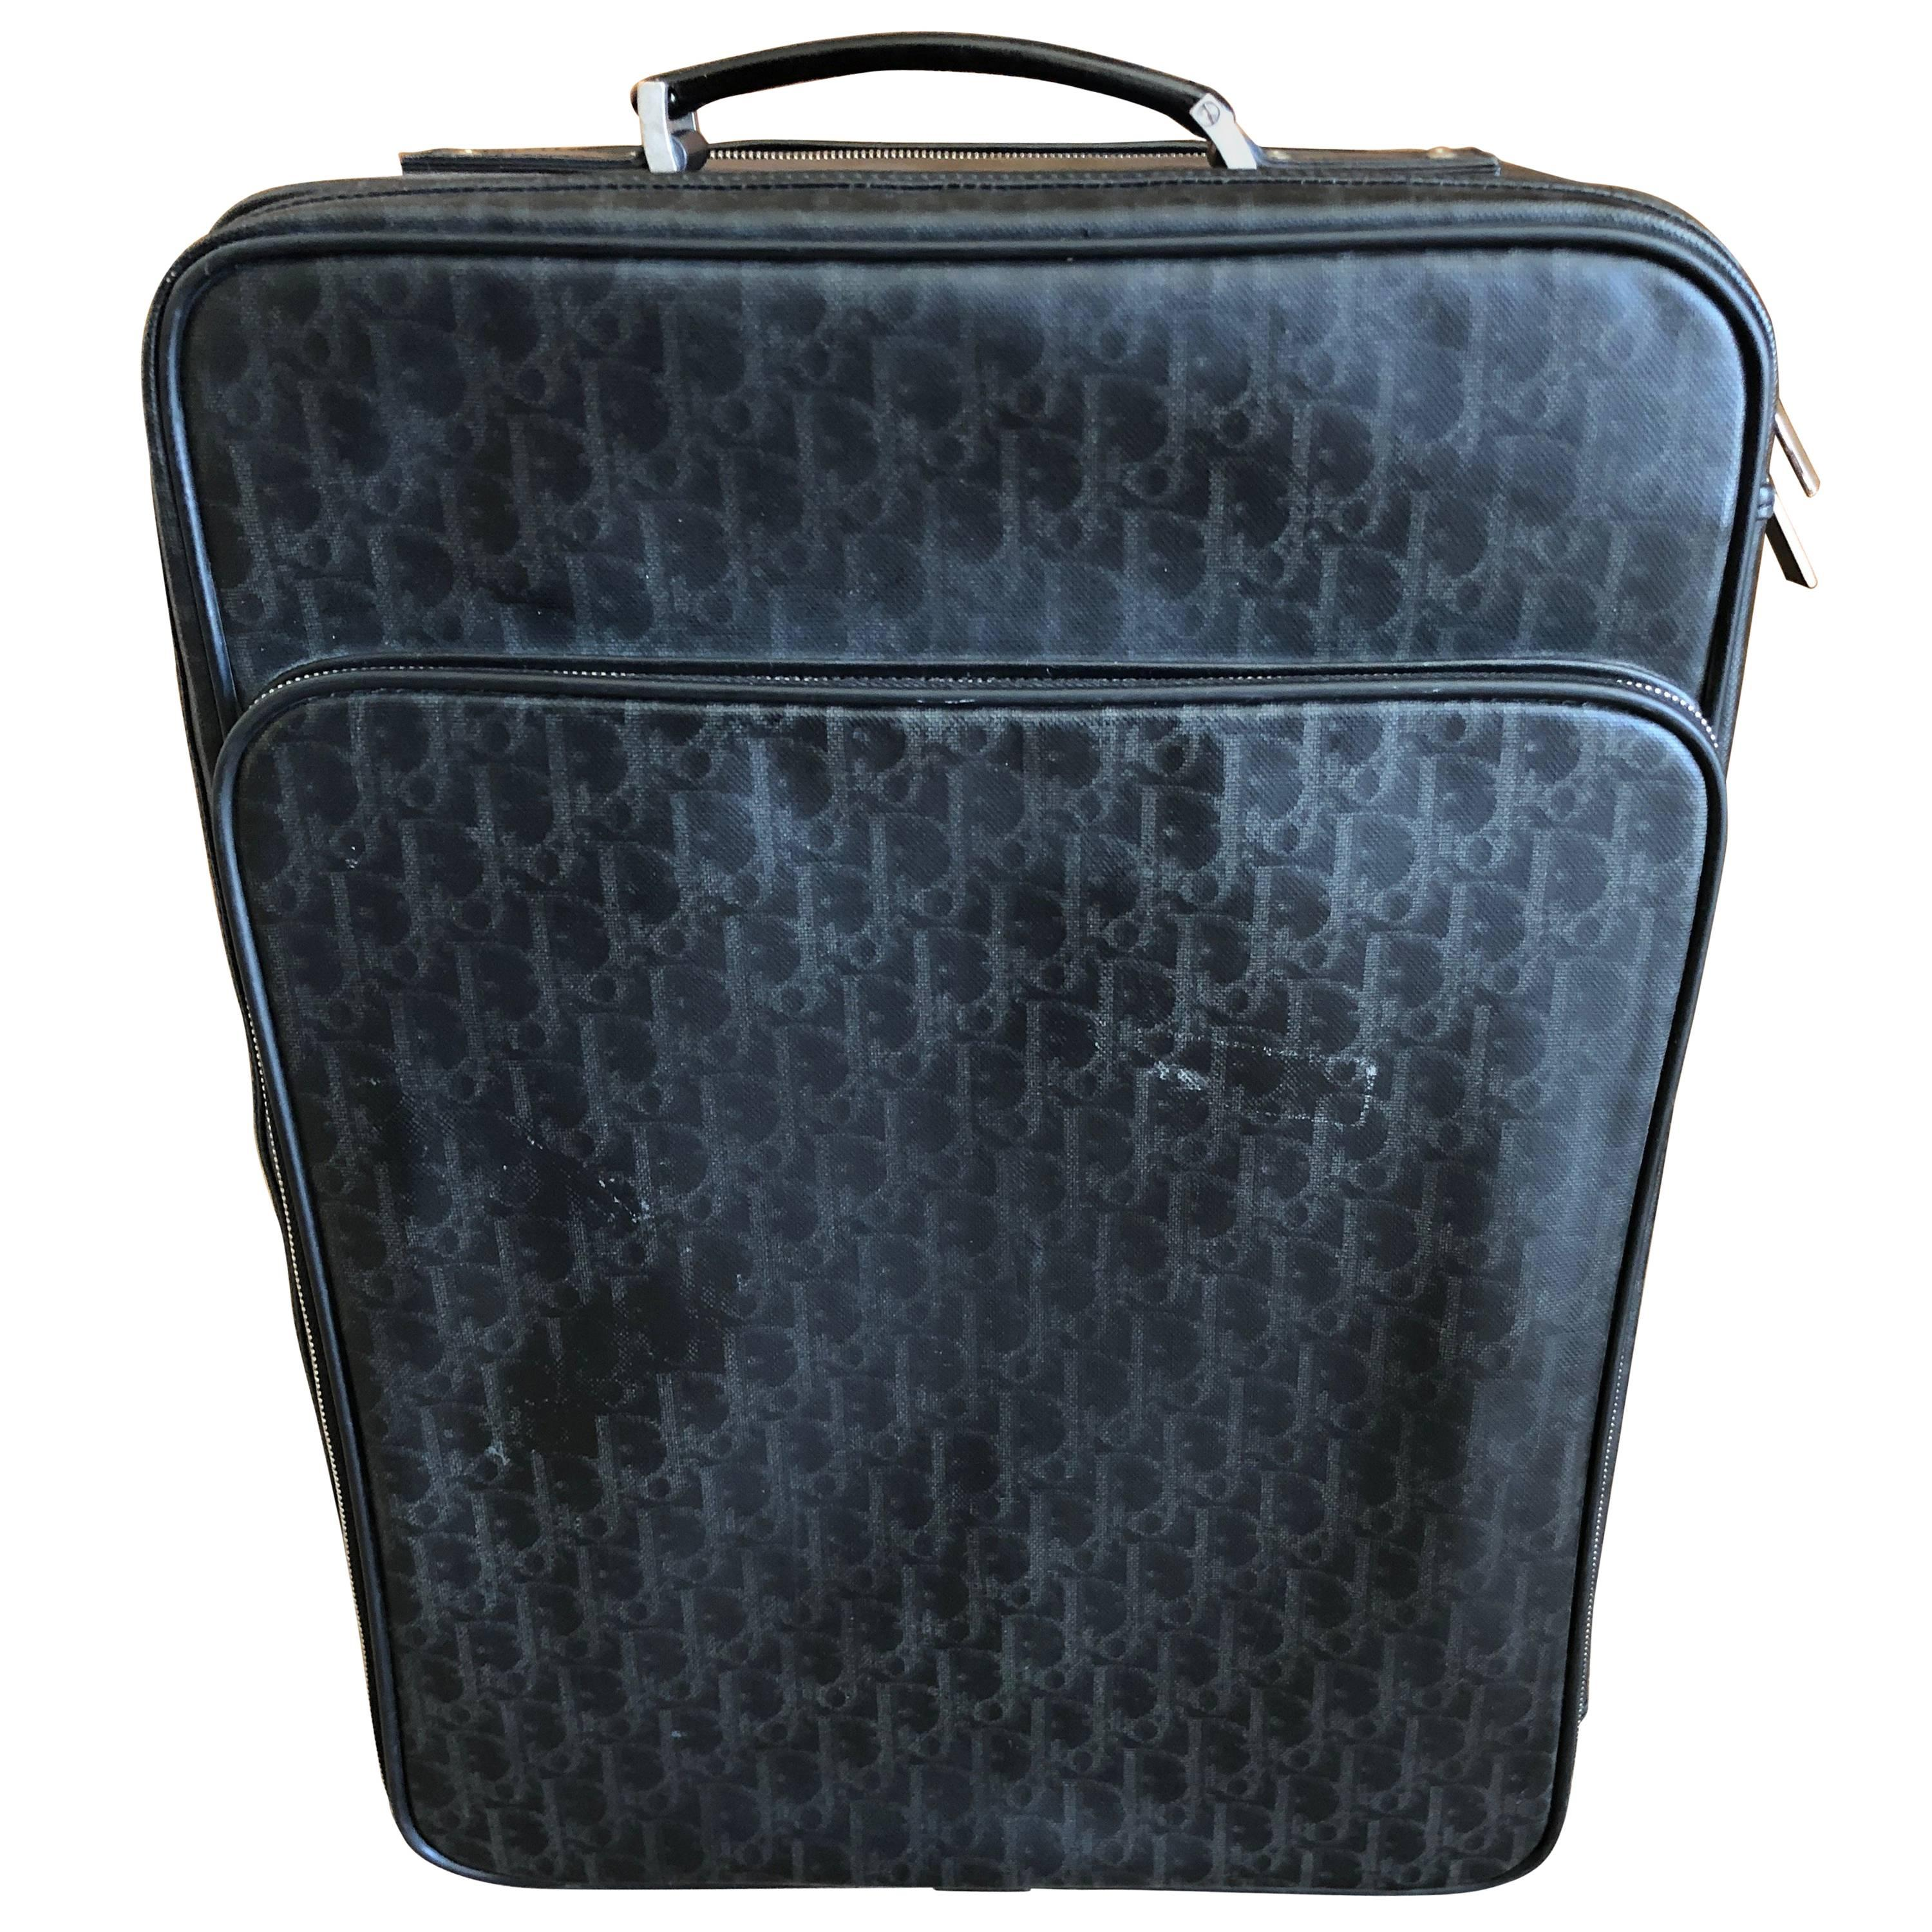 Dior Homme Gentleman s Black Logo Monogram Rolling Luggage Suitcase For  Sale at 1stdibs cc8a7b8b0711d